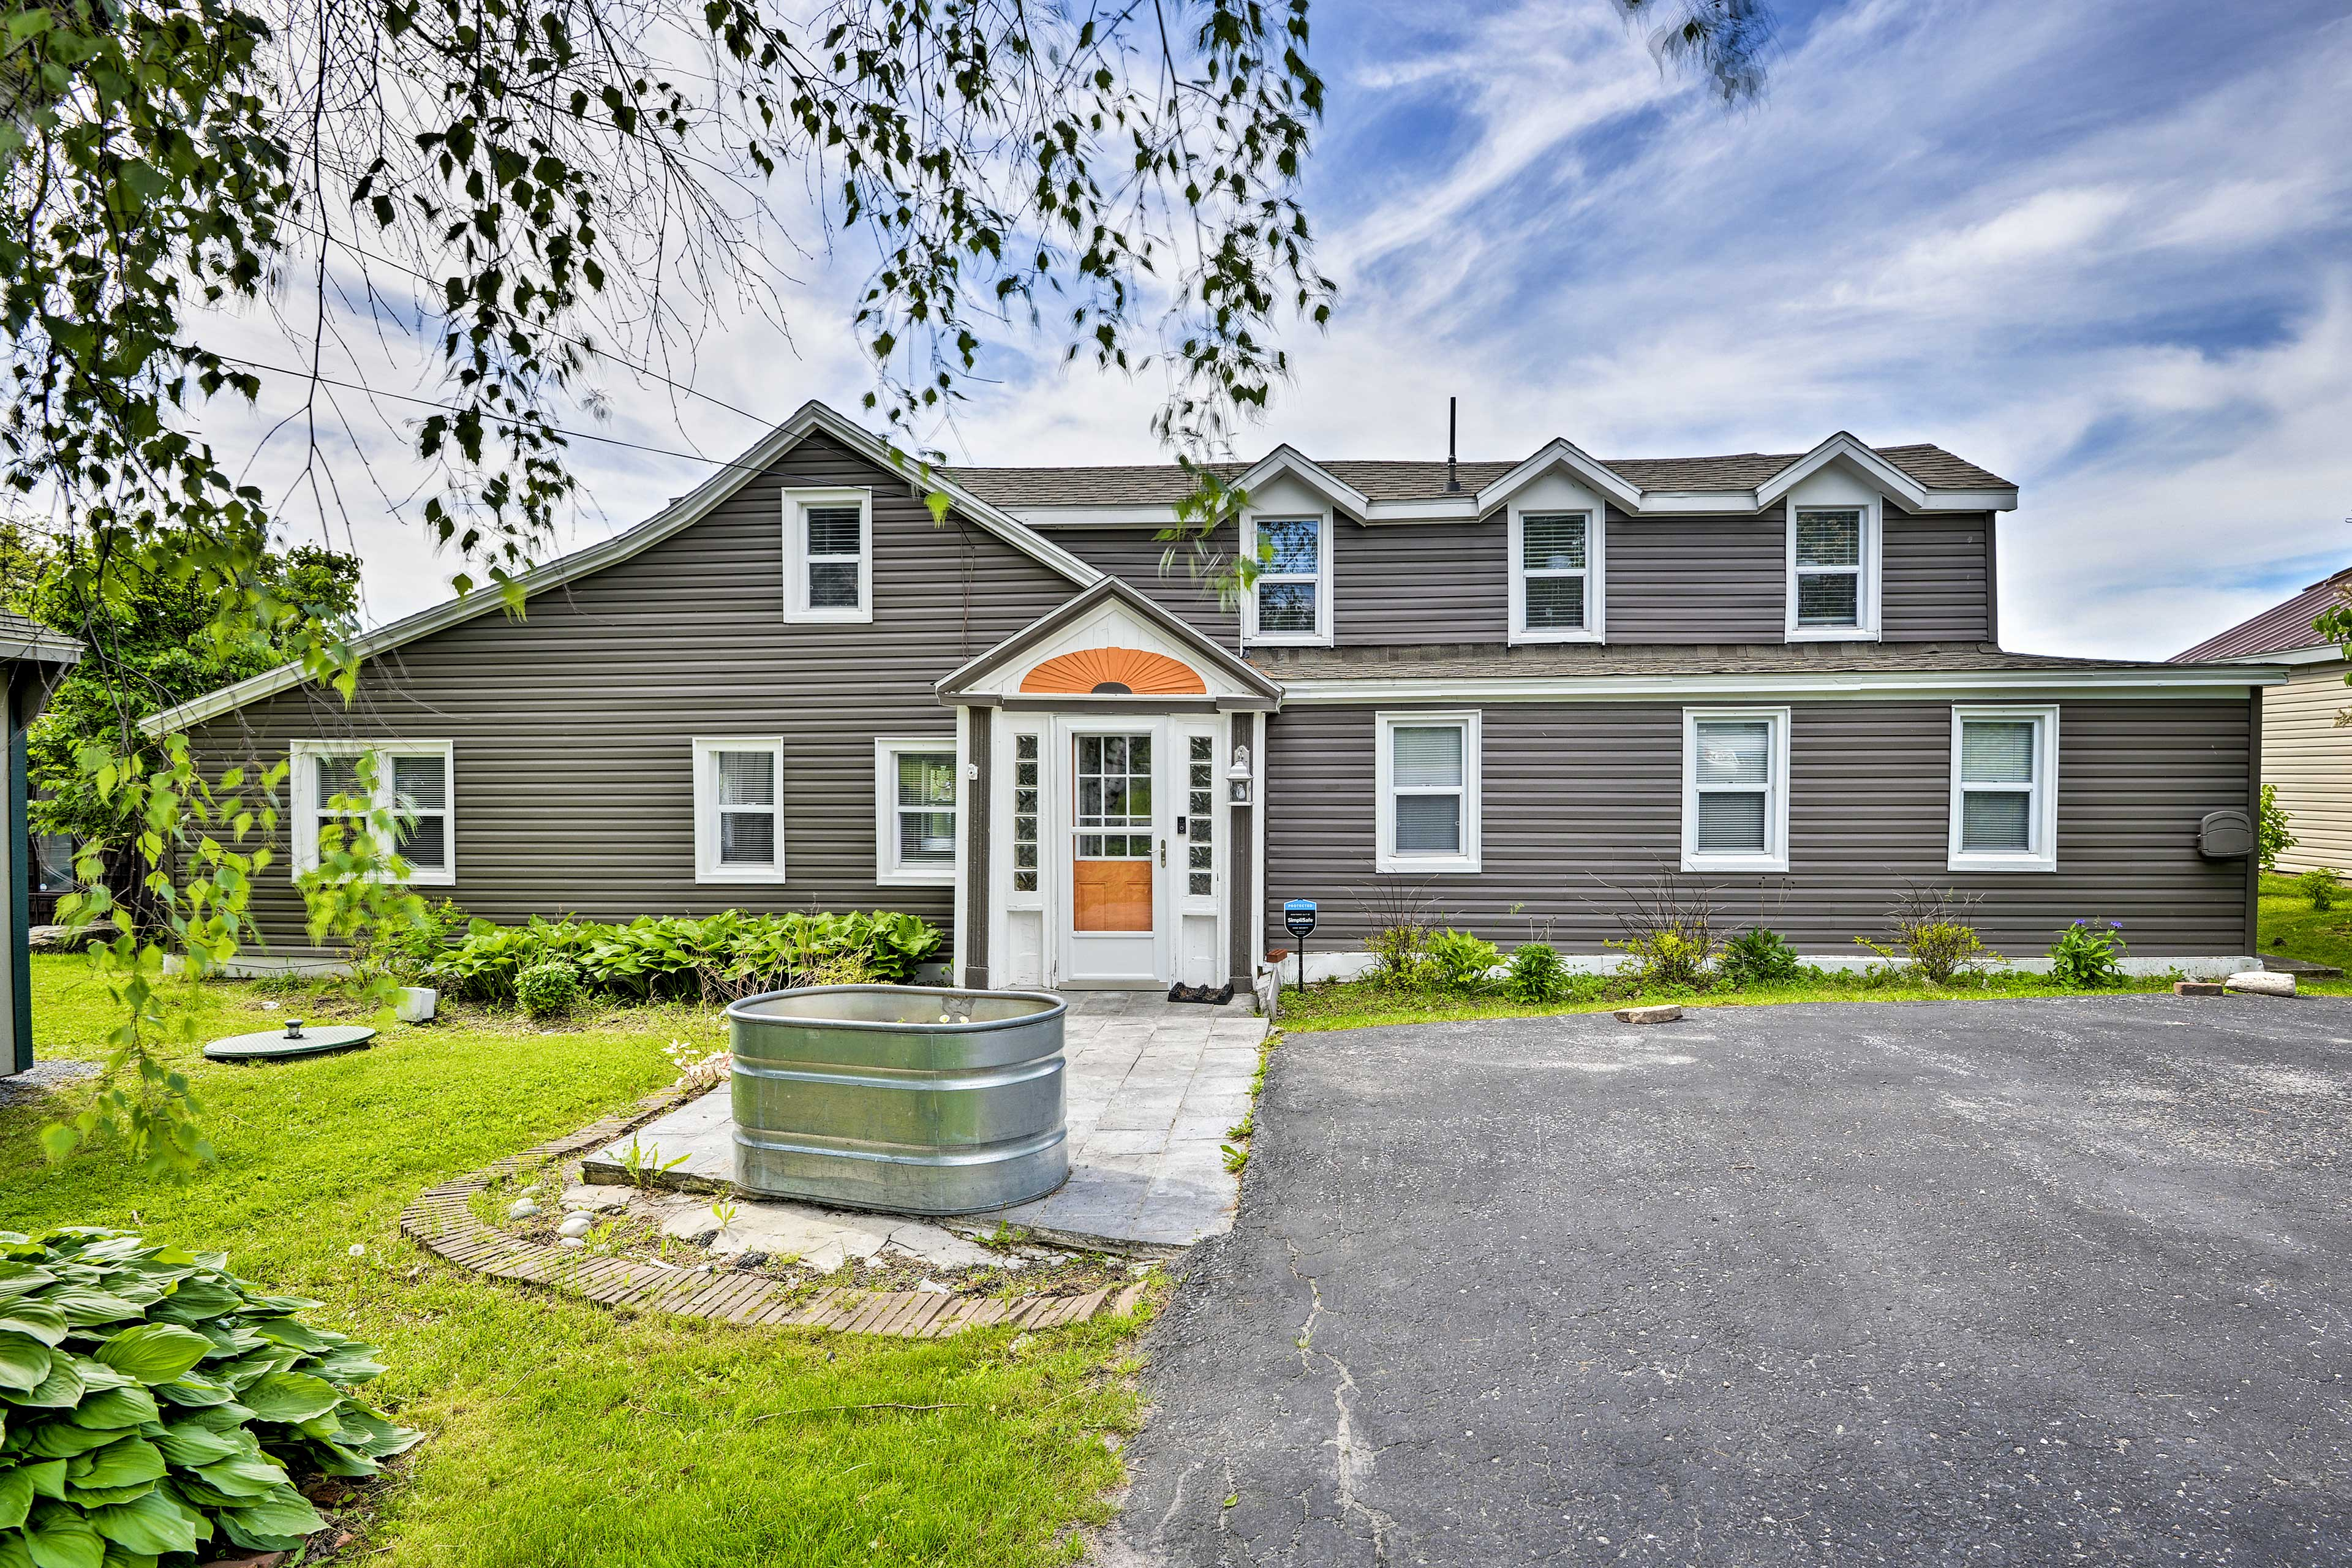 This vacation rental offers 4 bedrooms and 2.5 bathrooms.